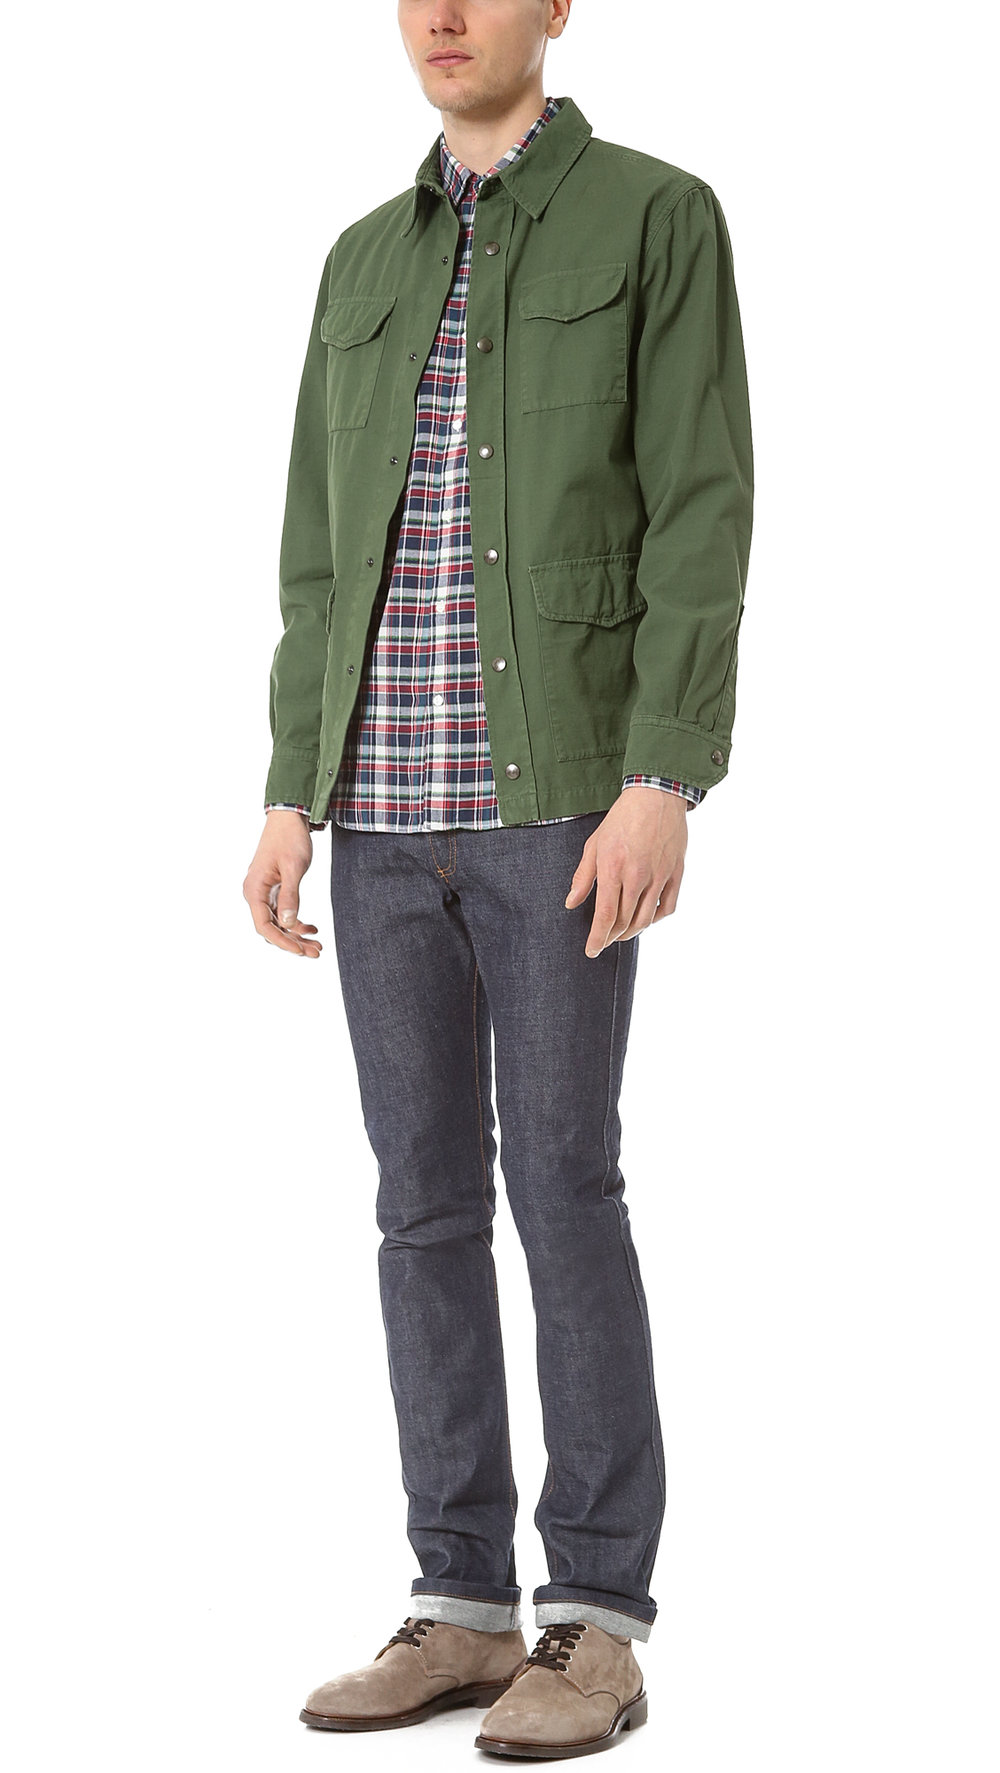 aspesi-green-vietnam-shirt-jacket-product-1-17960831-1-166459838-normal.jpeg